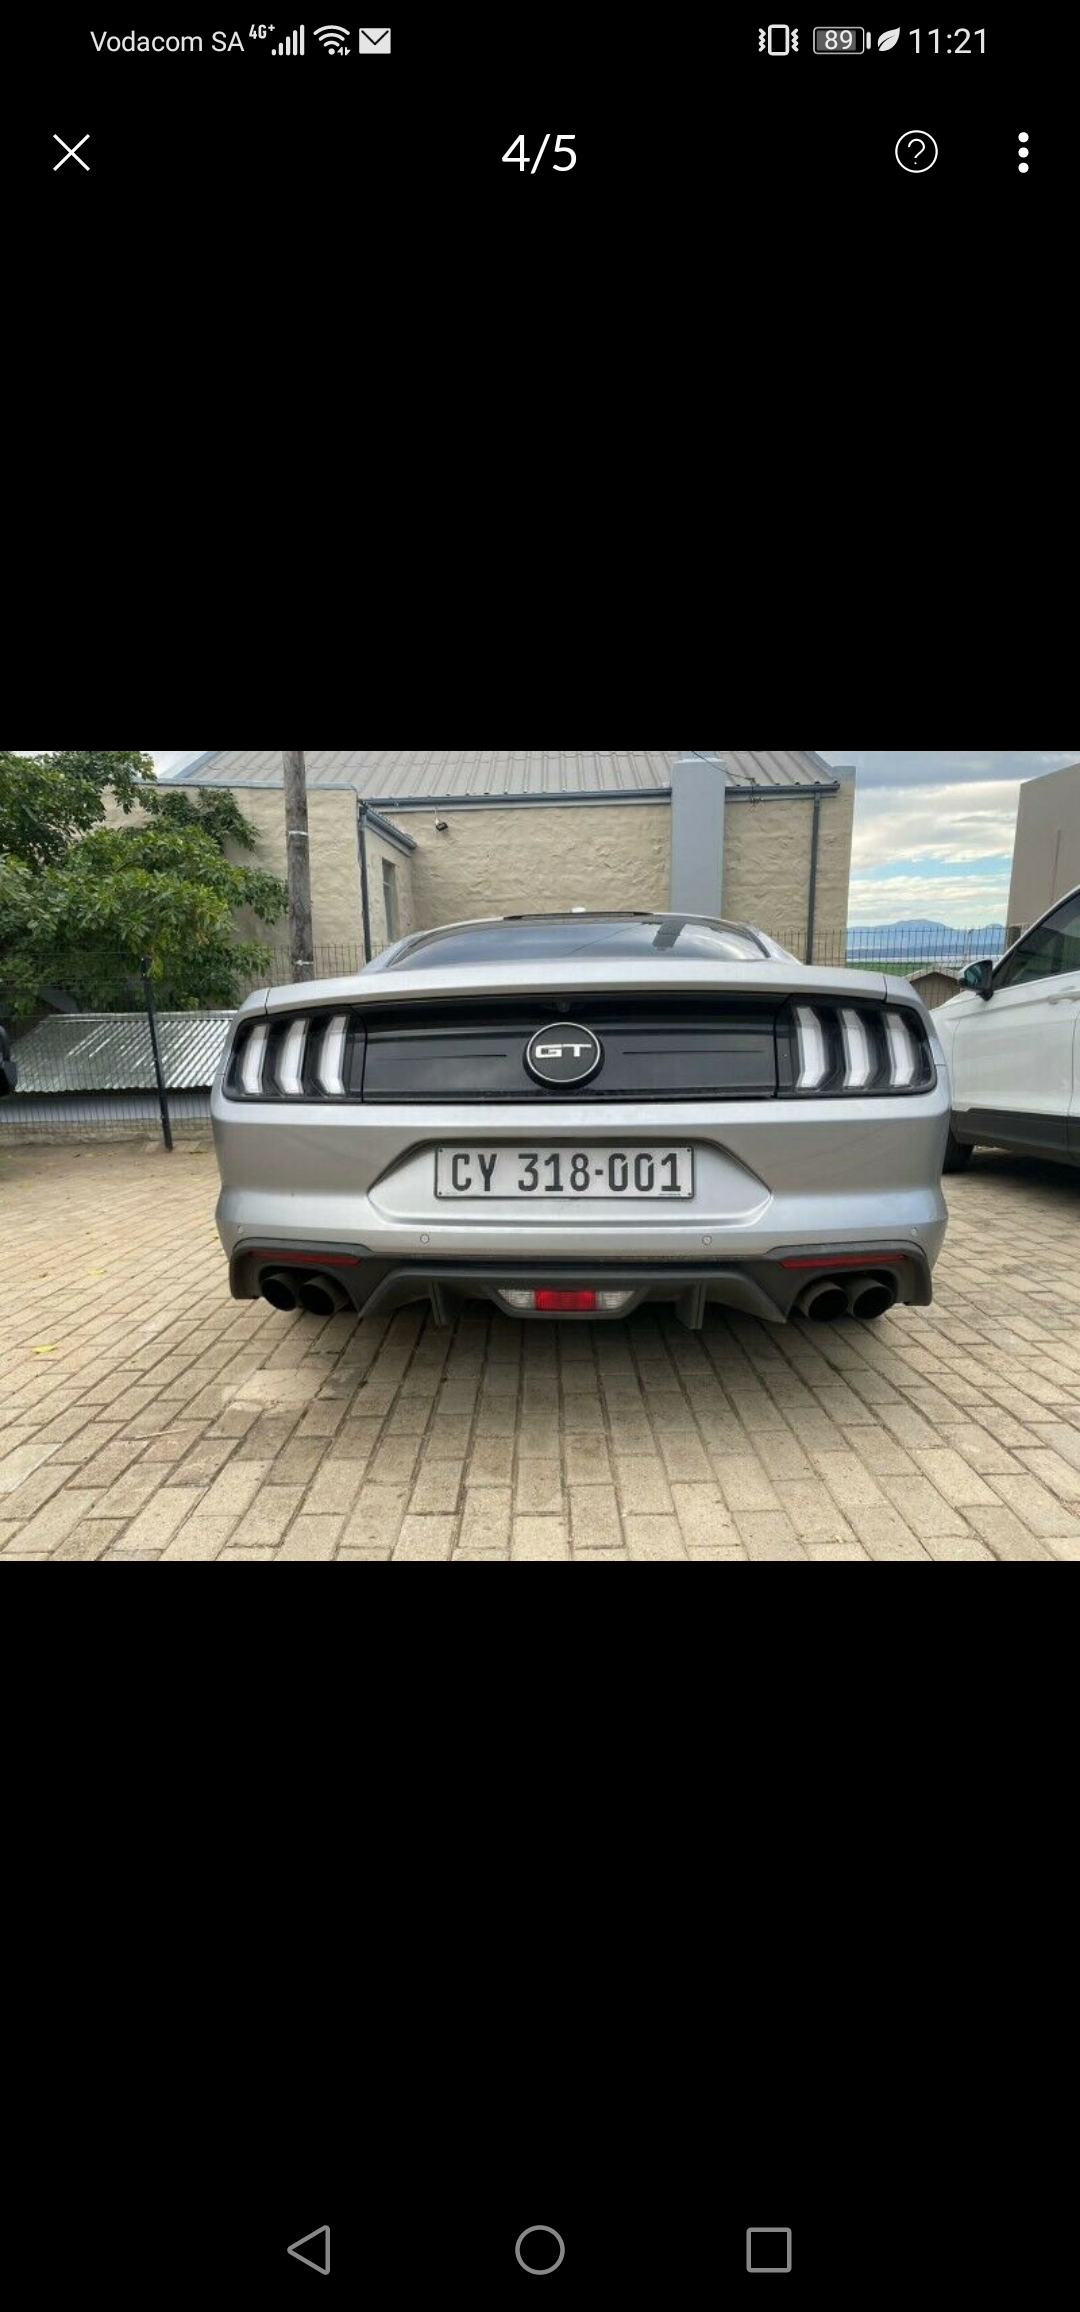 2020 Ford Mustang 5.0 GT A/T stock standard